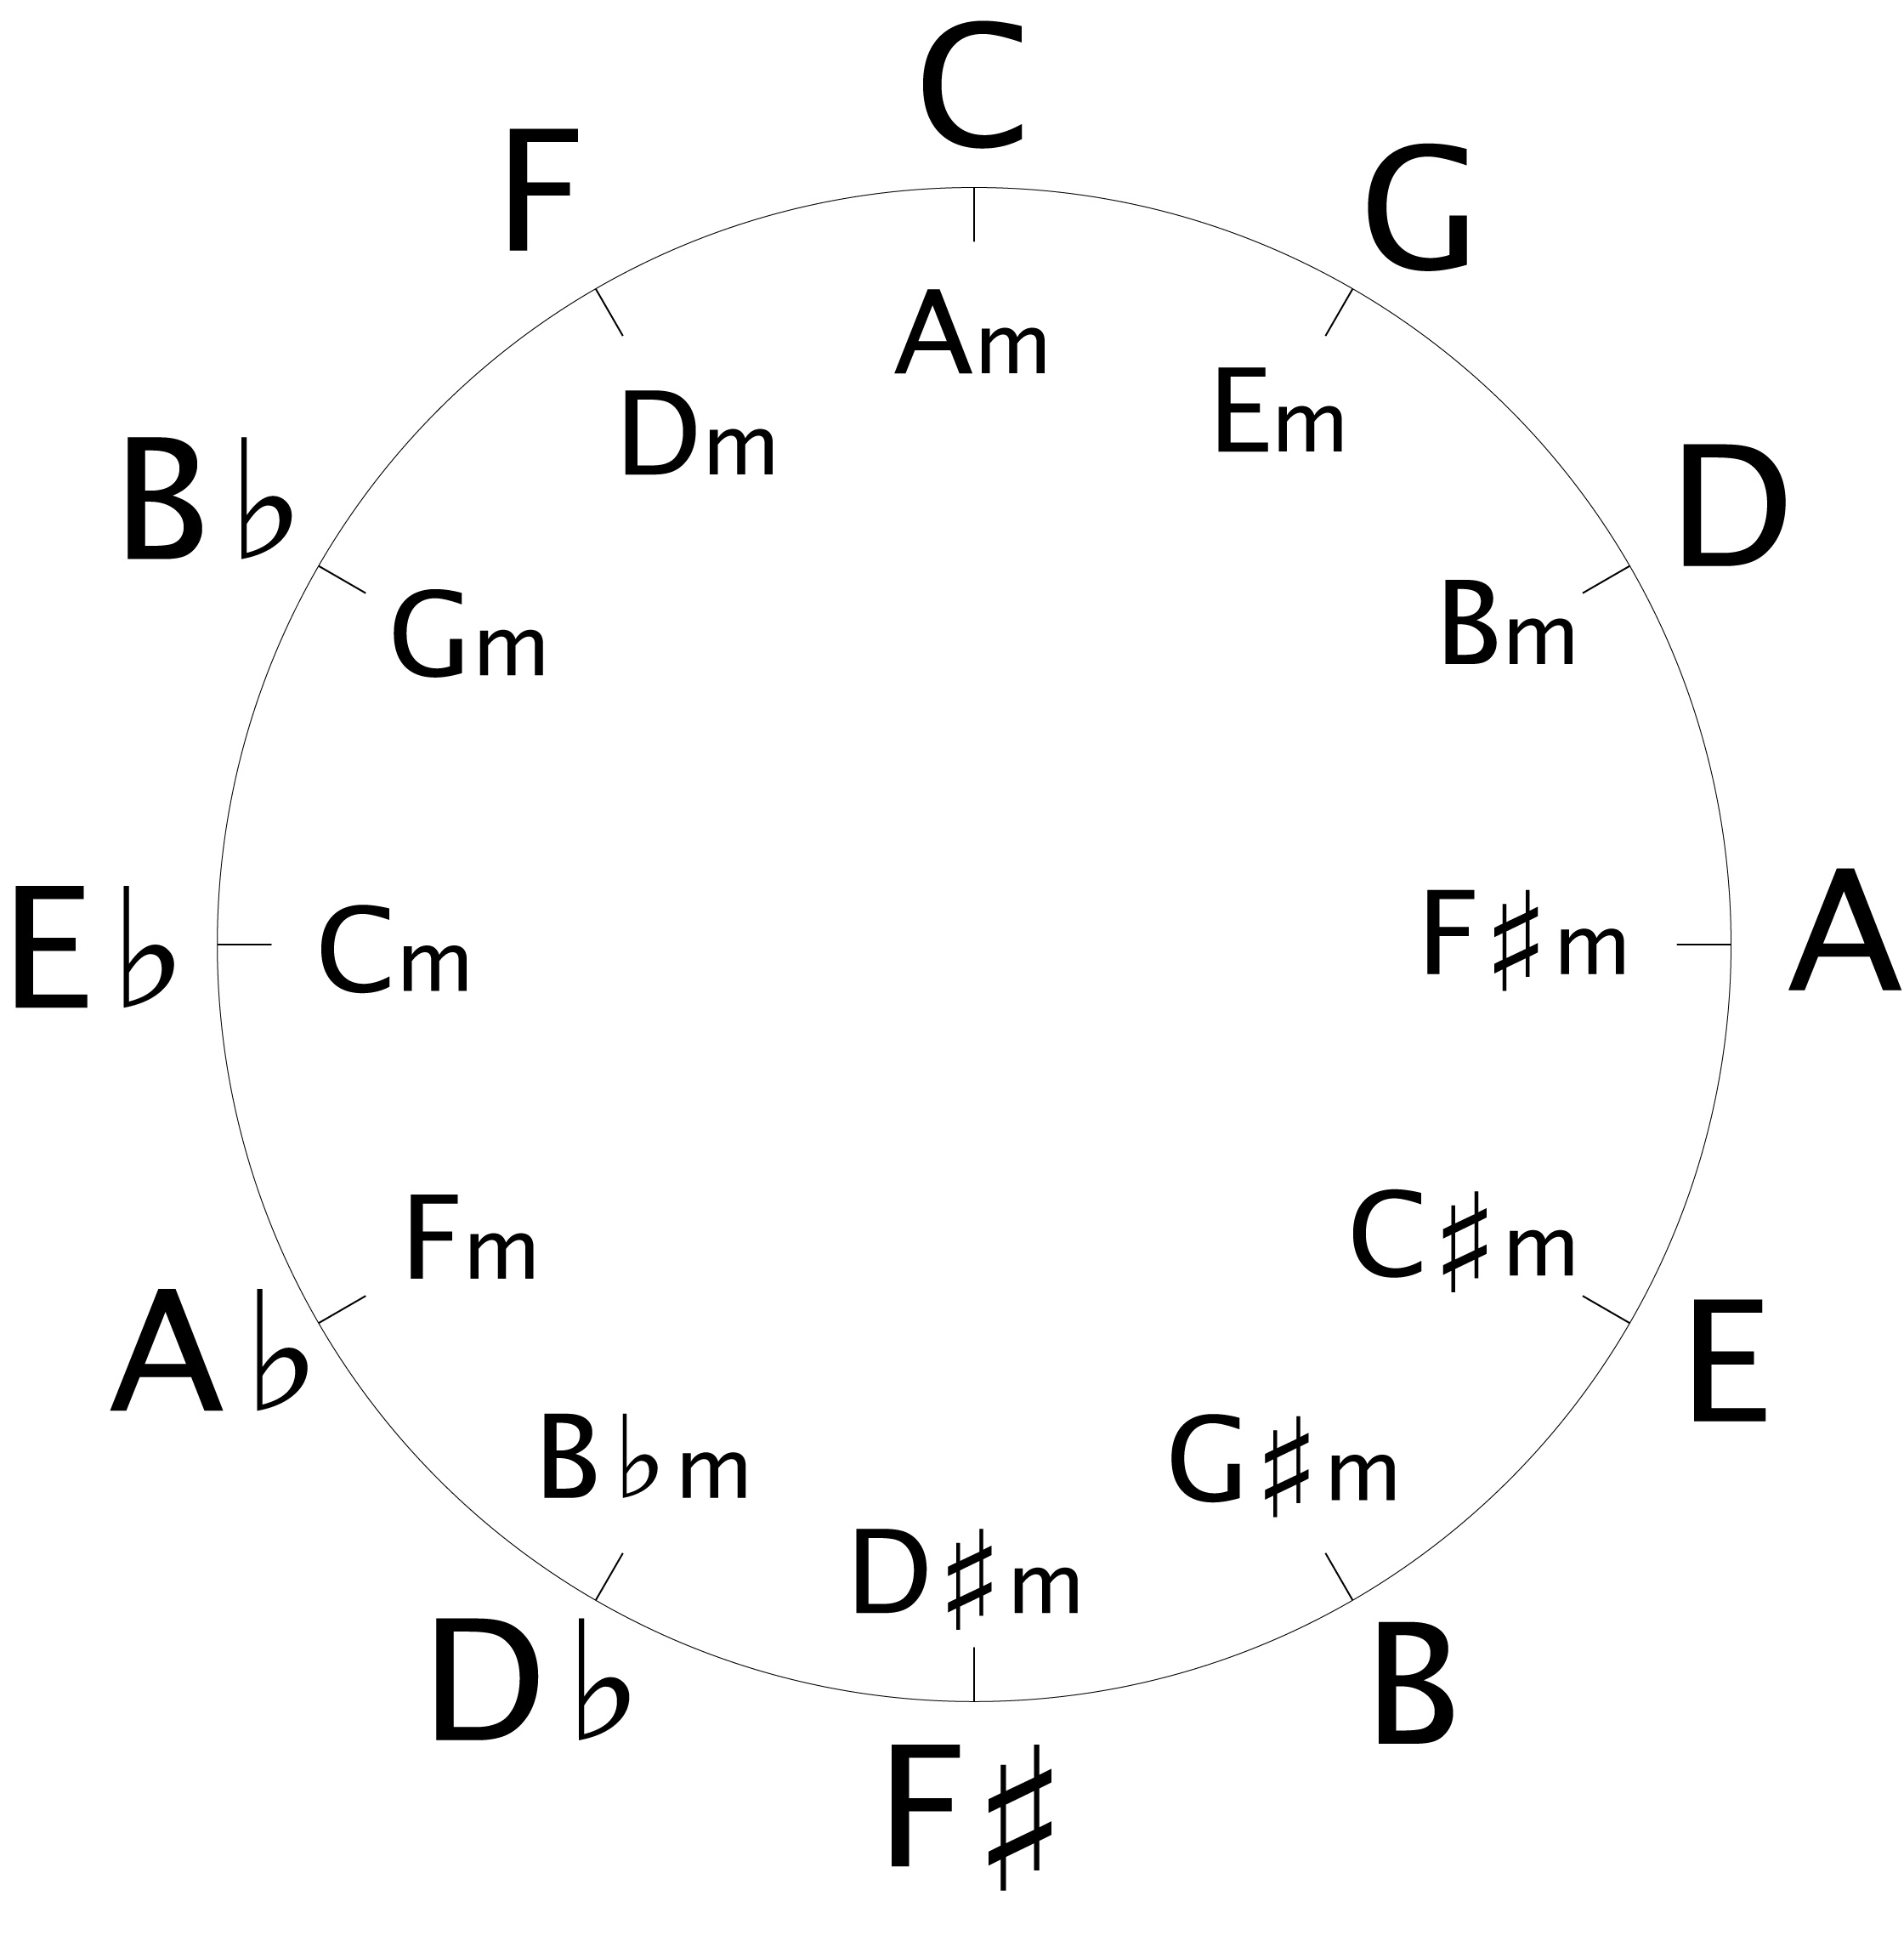 G Guitar Chord Chart: Circle of 5ths hires.jpg - Wikimedia Commons,Chart